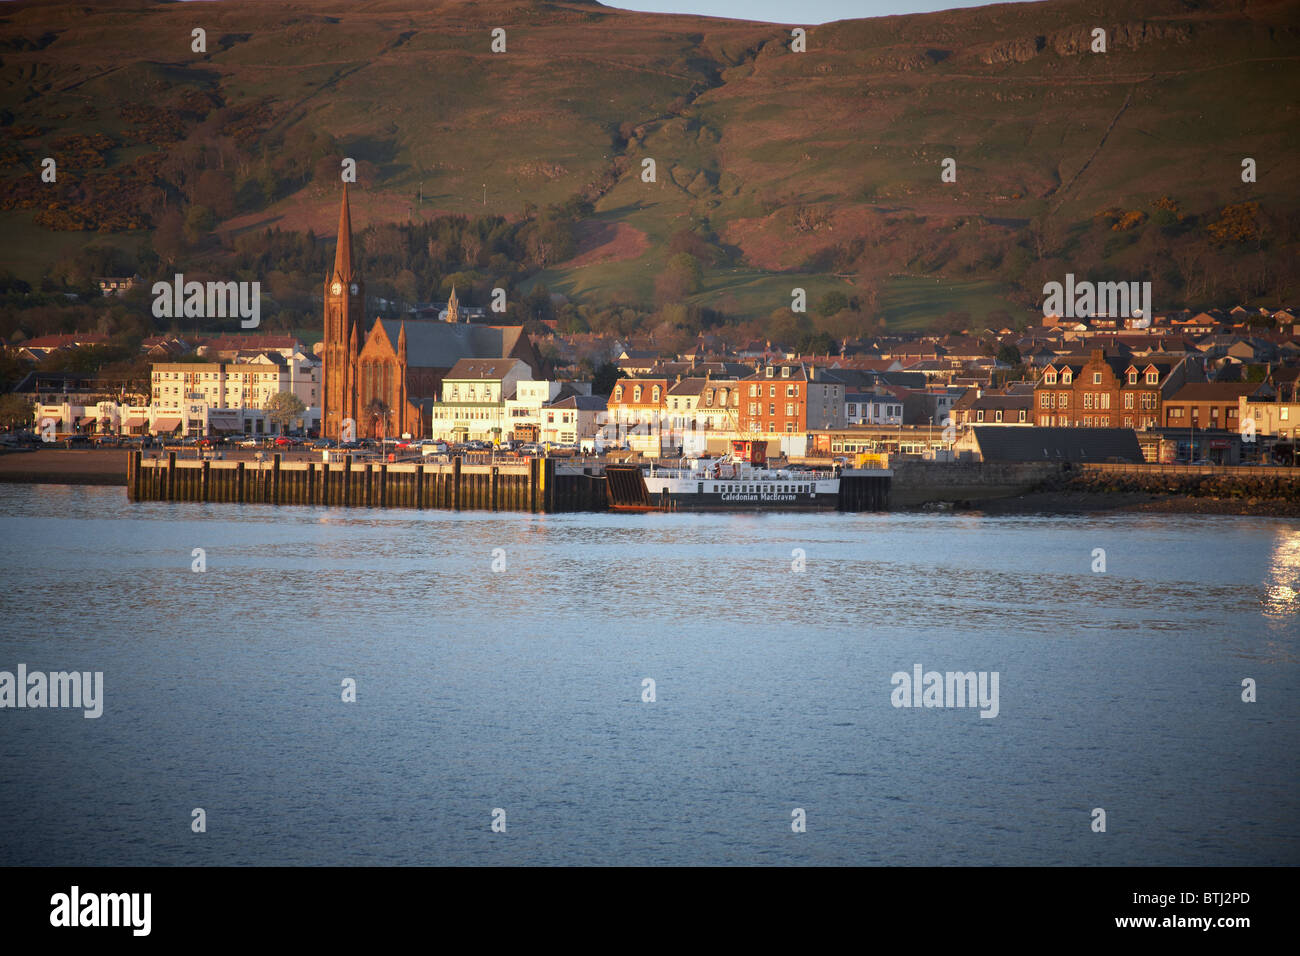 Views of Largs coastline from the ferry link between Largs and the Isle Of Cumbrae - Stock Image